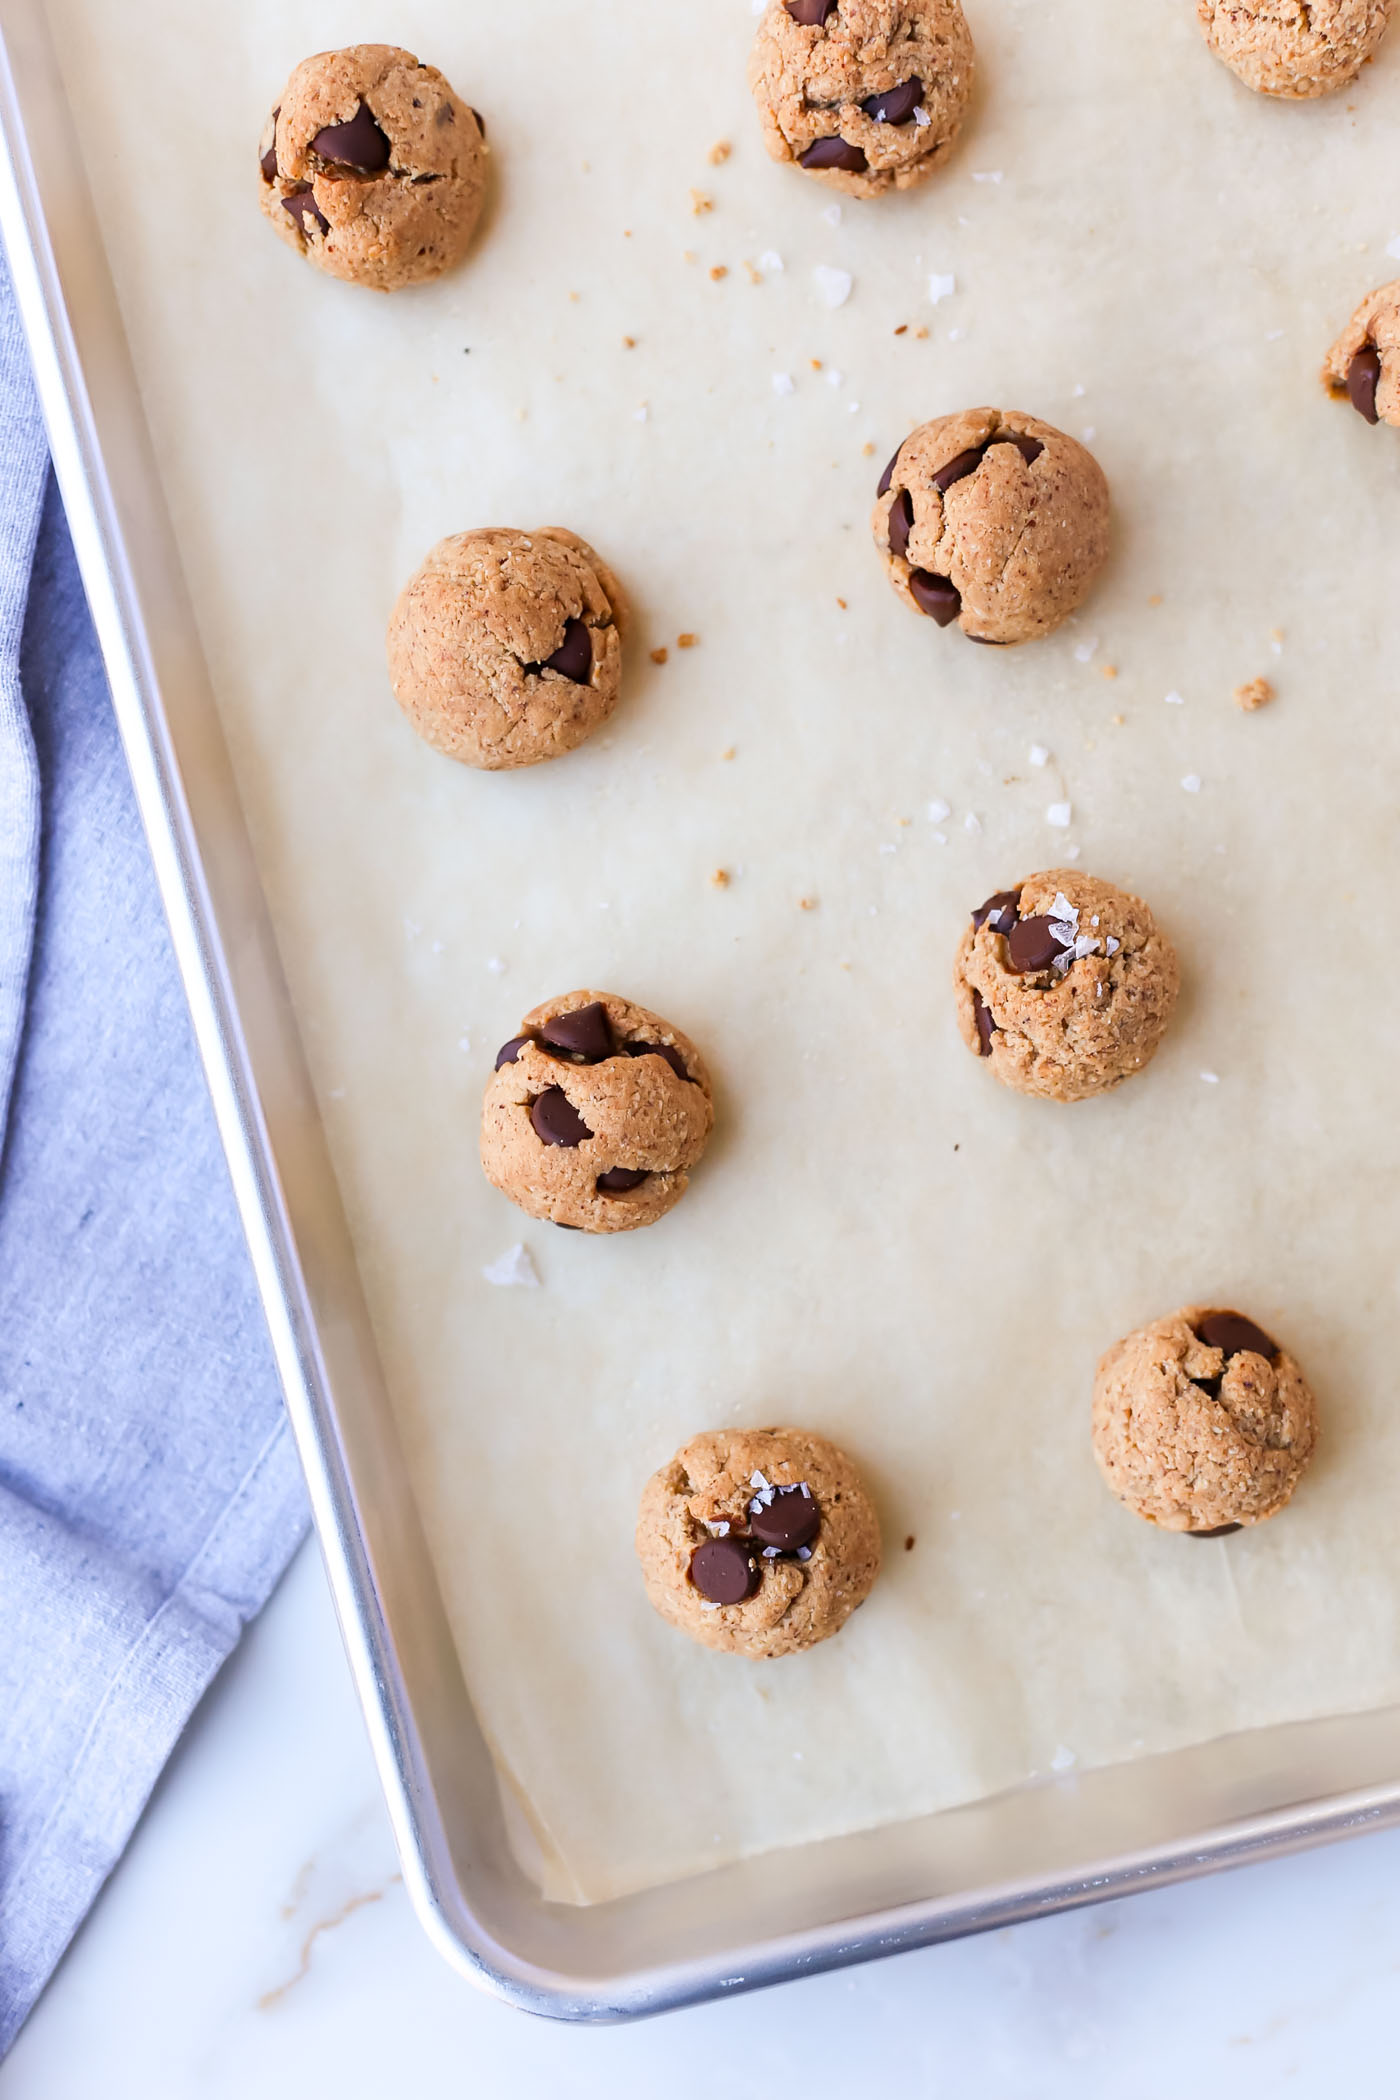 rows of chocolate chip cookies on sheet pan with blue napkin on the side